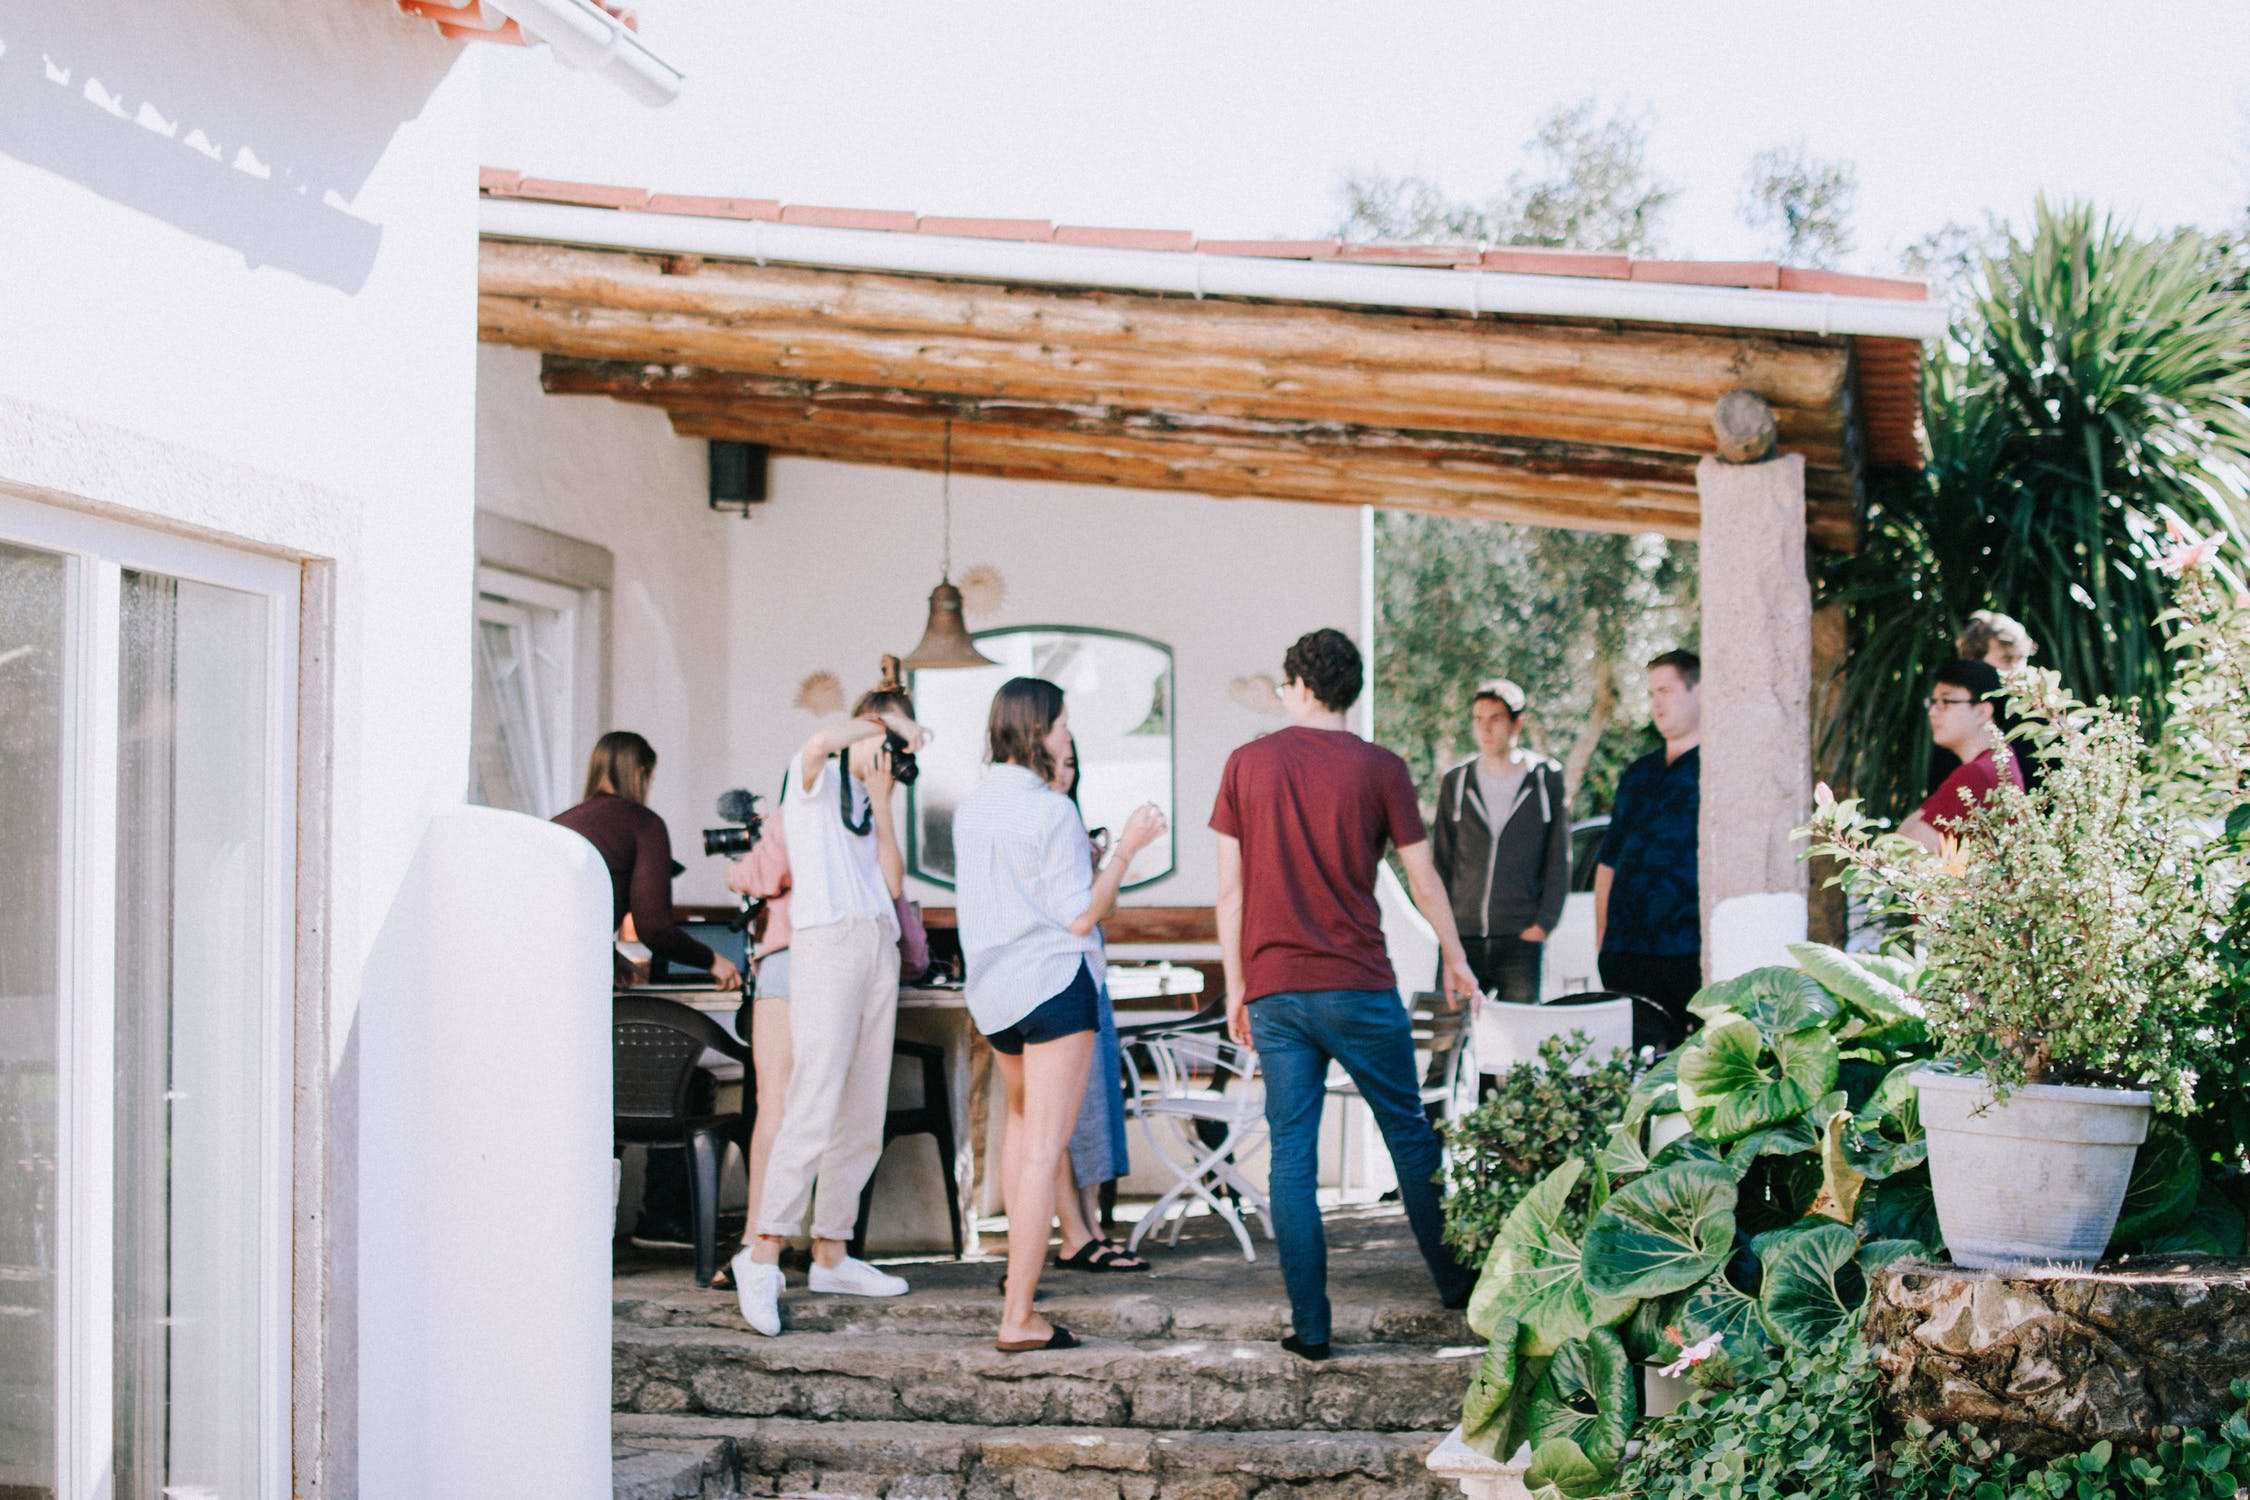 3 Steps to Throwing a Successful Housewarming Party